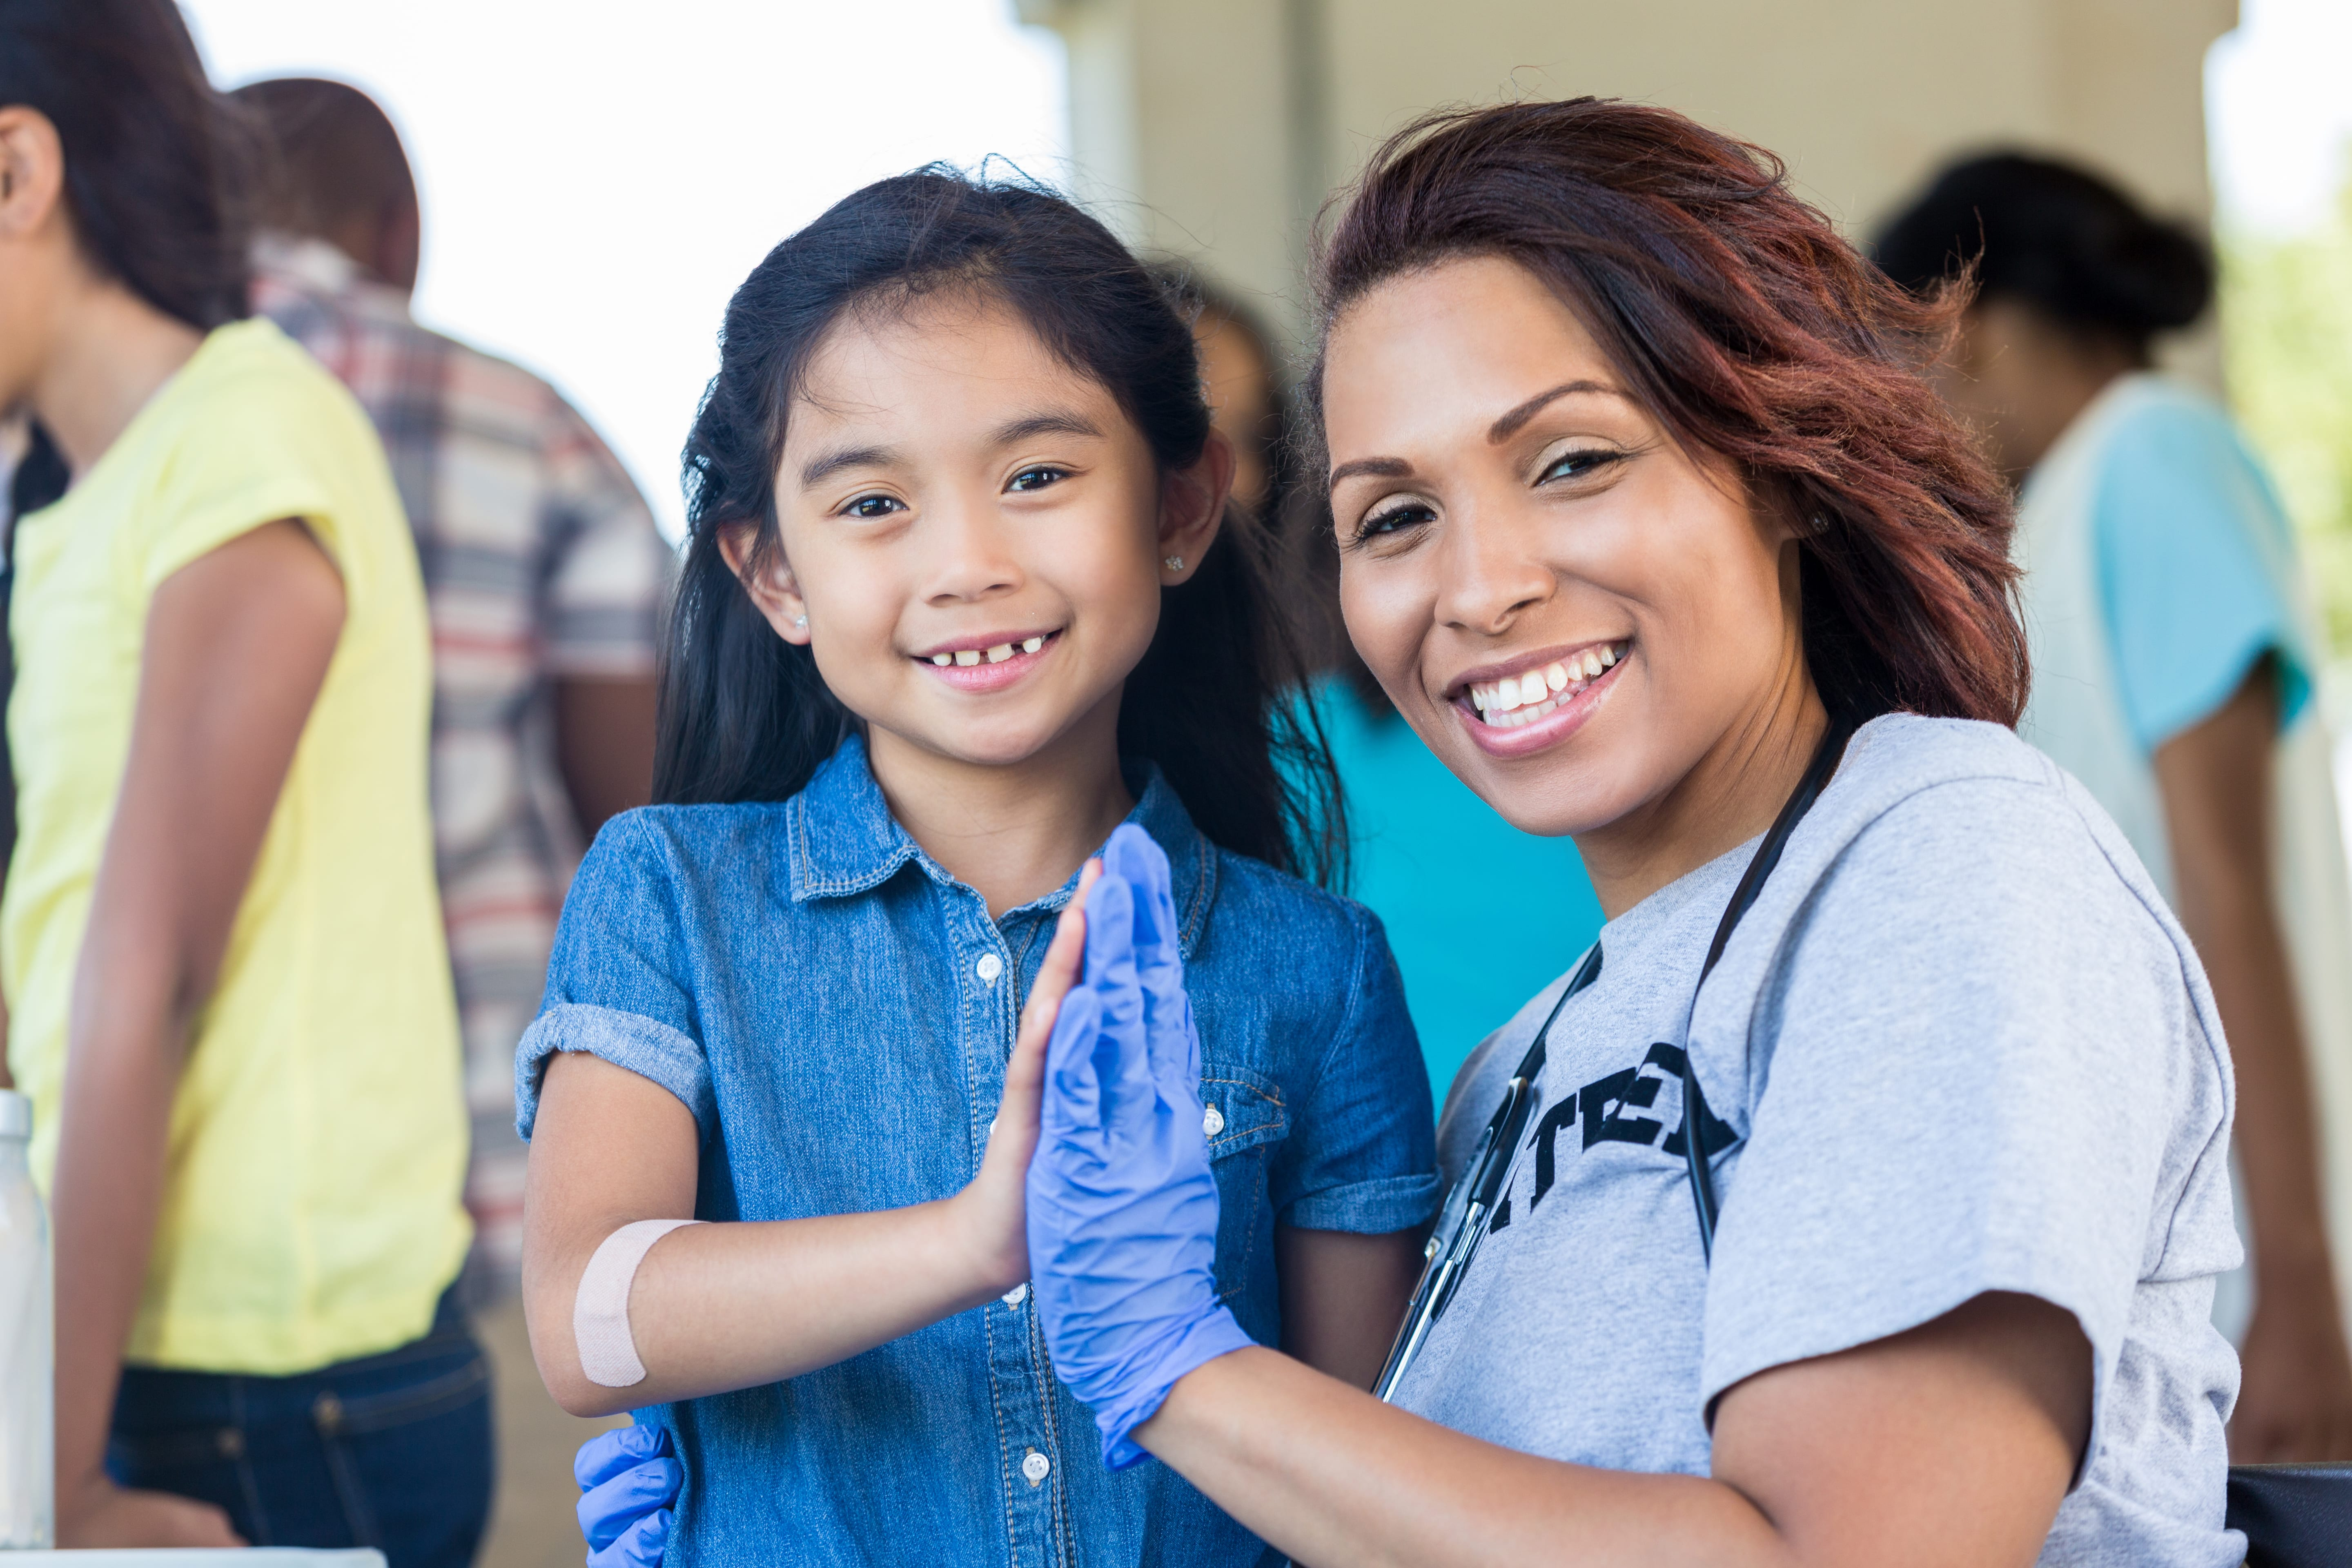 woman and young girl high fiving